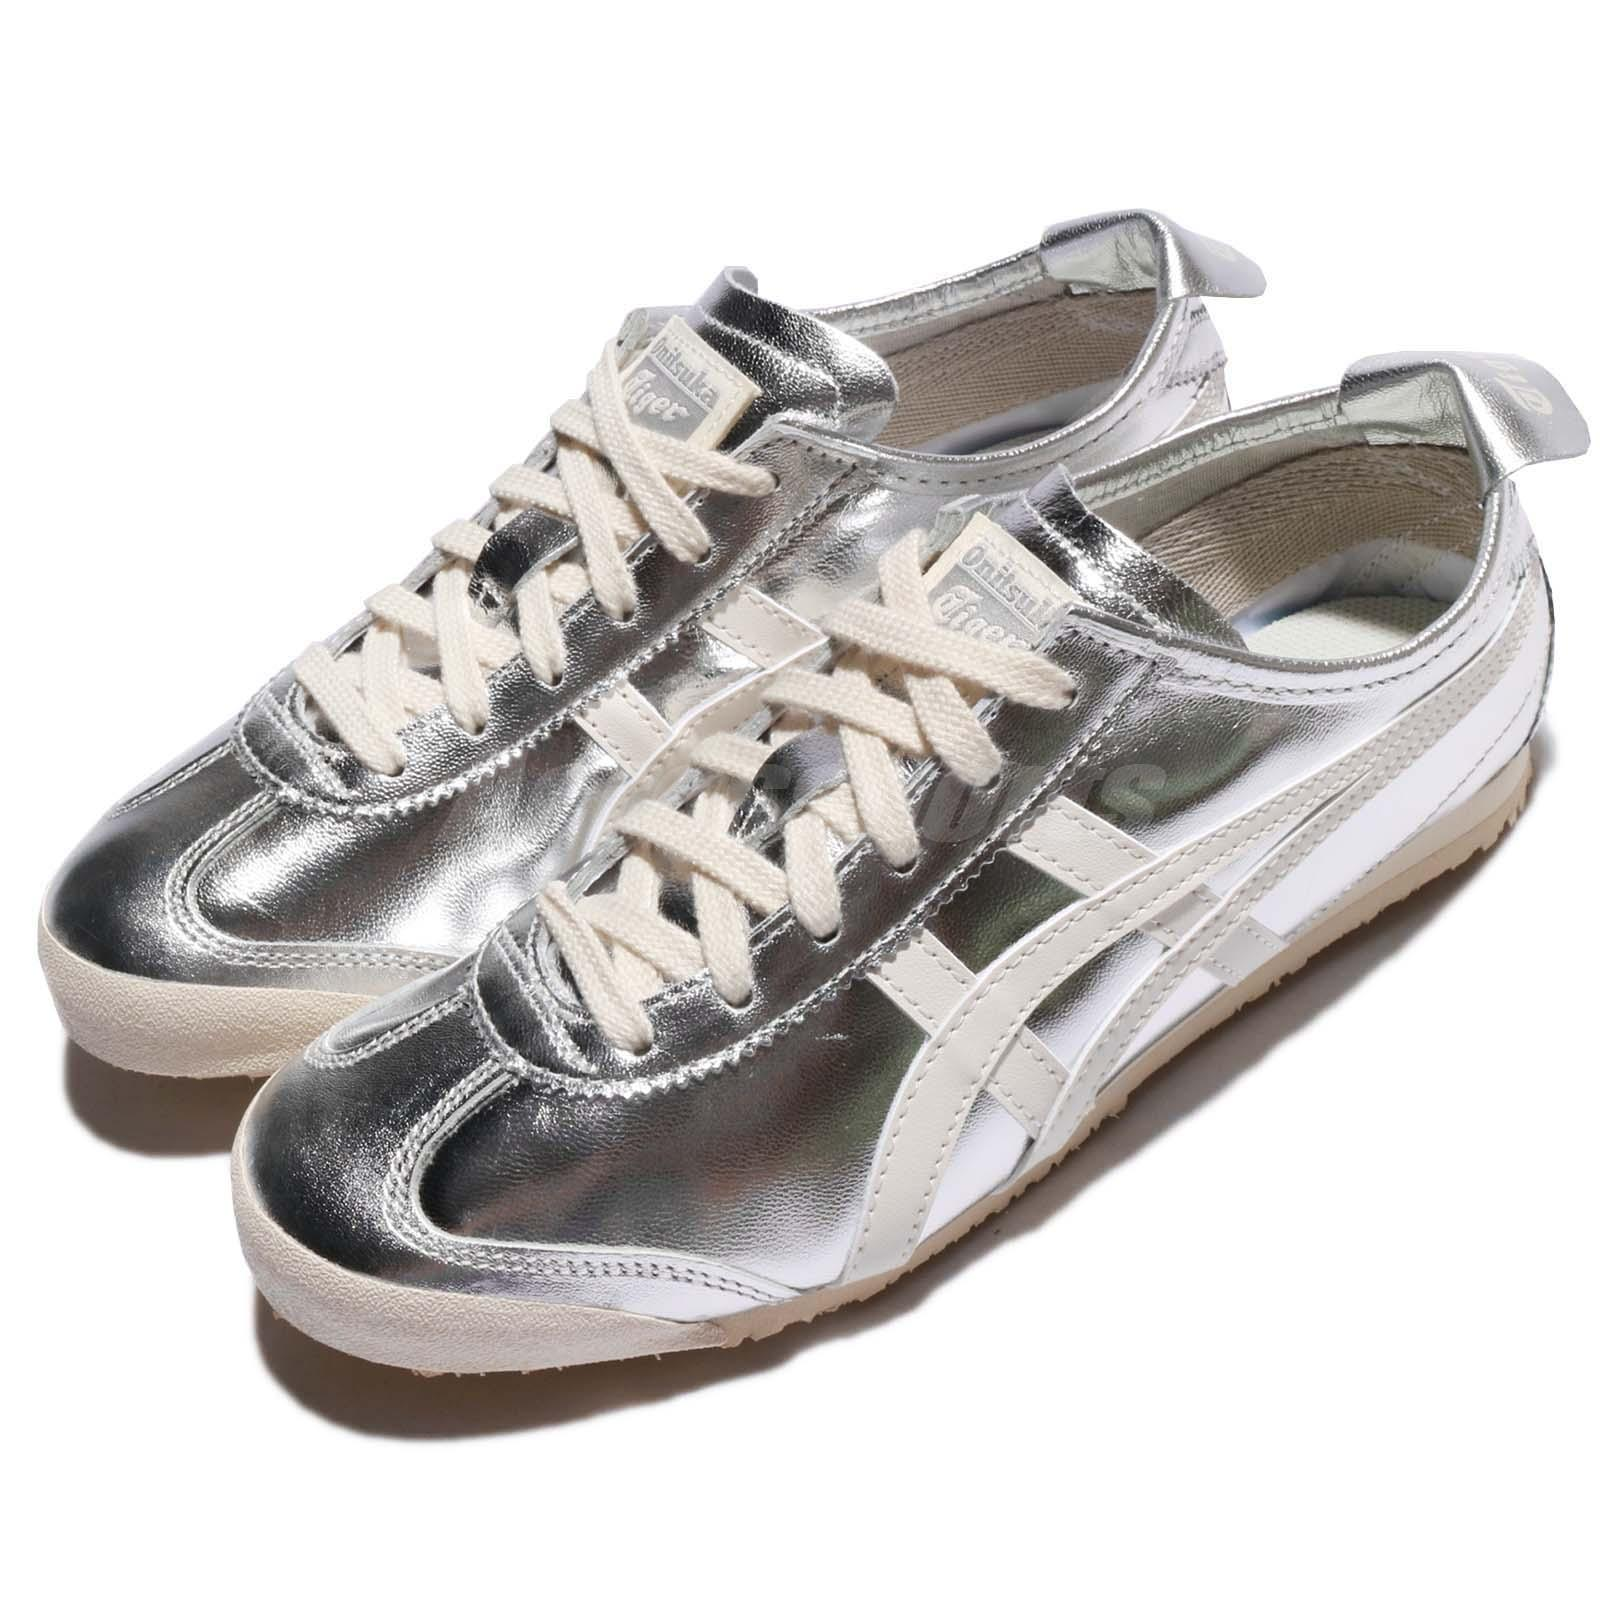 best service 8c300 d1a40 Details about Asics Onitsuka Tiger Mexico 66 Patent Leather Silver Off  White Men THL7C2-9399